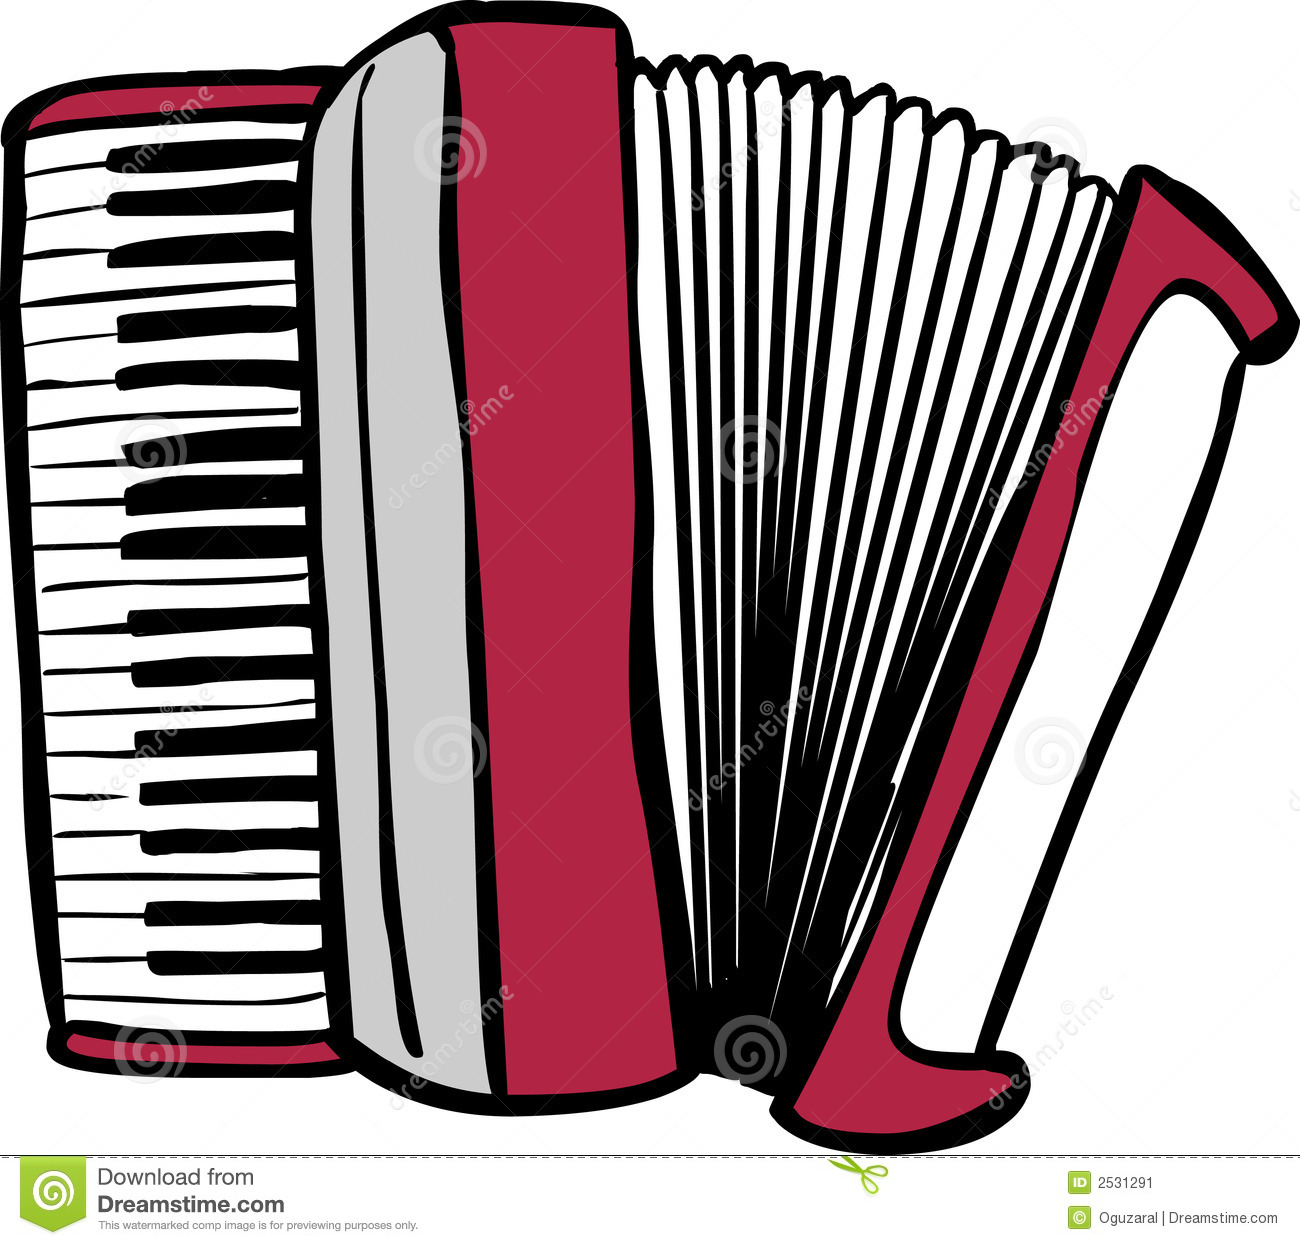 accordion clipart panda free clipart images rh clipartpanda com accordion player clipart cajun accordion clipart